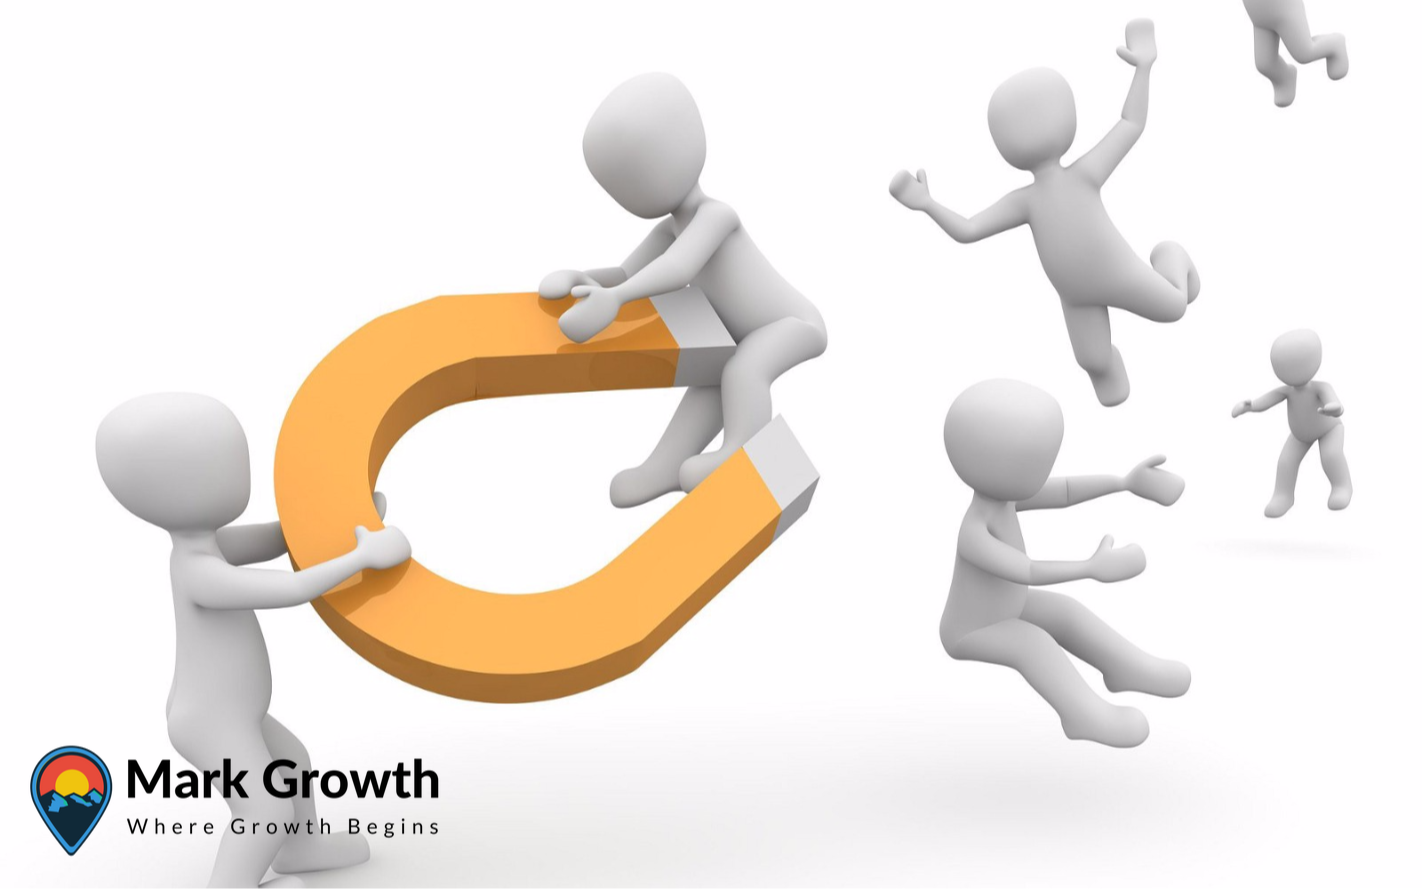 lead magnets for senior living communities marketing and growth